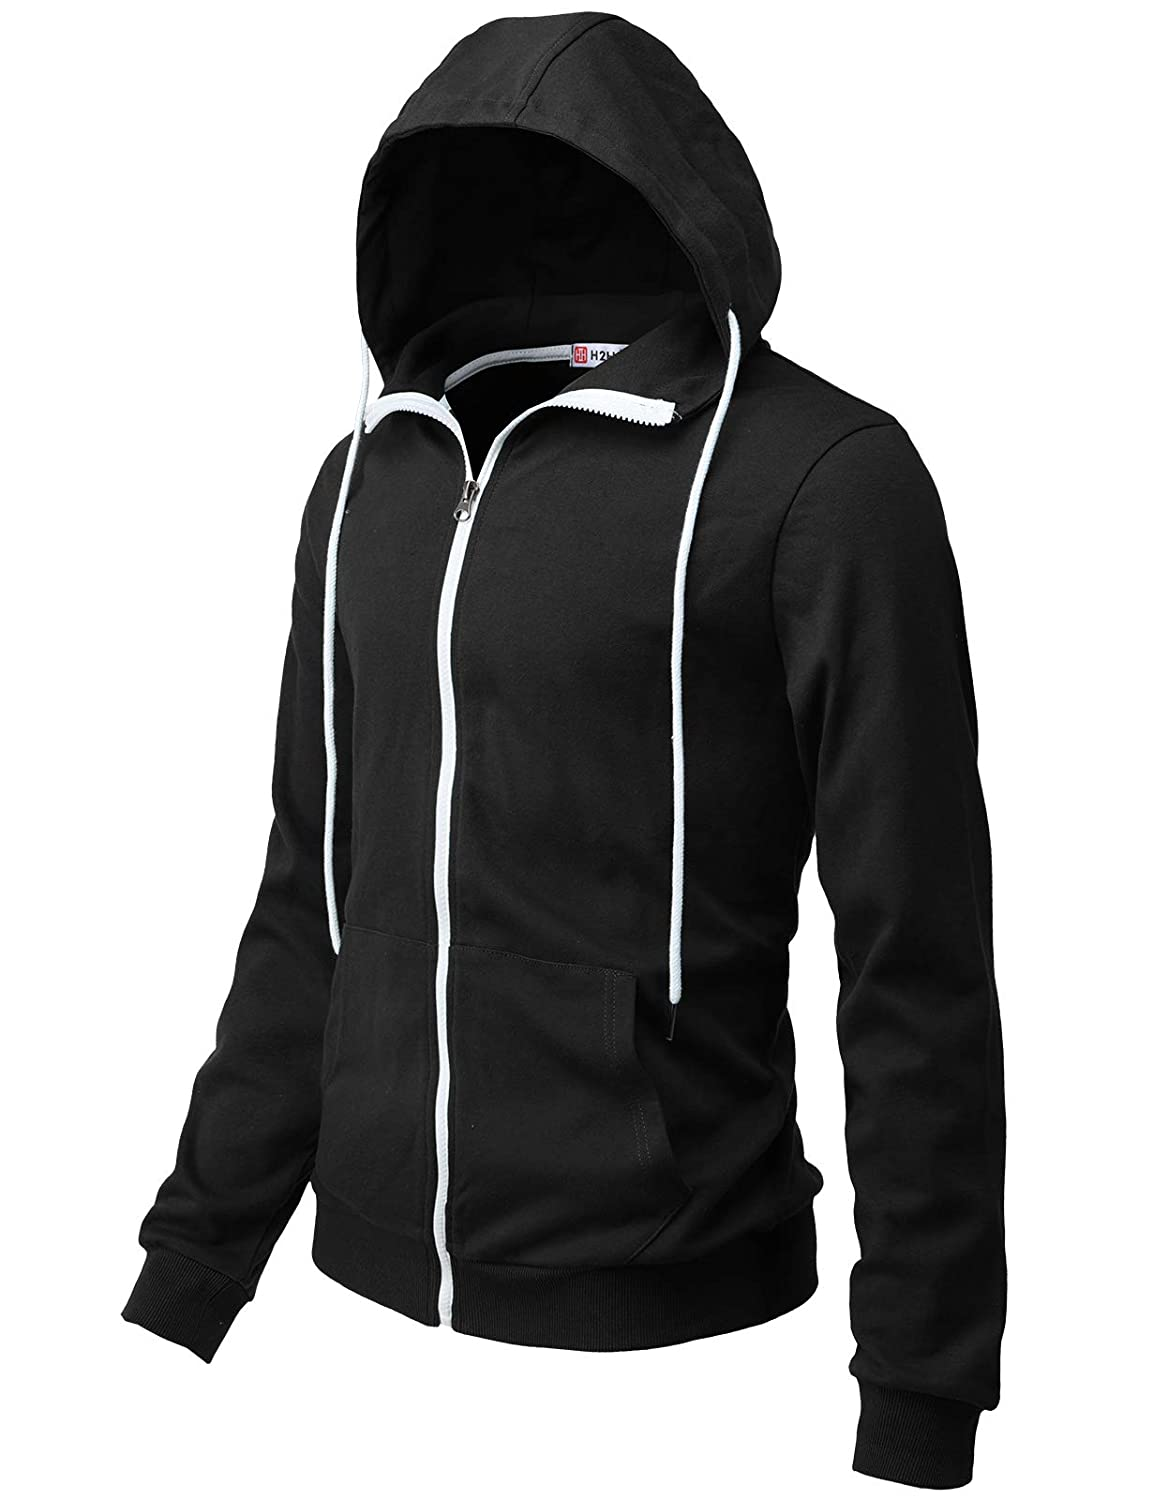 1204d15f0 H2H Mens Casual Zip-up Hoodie Double Cotton Lightweight Hooded at Amazon  Men's Clothing store: